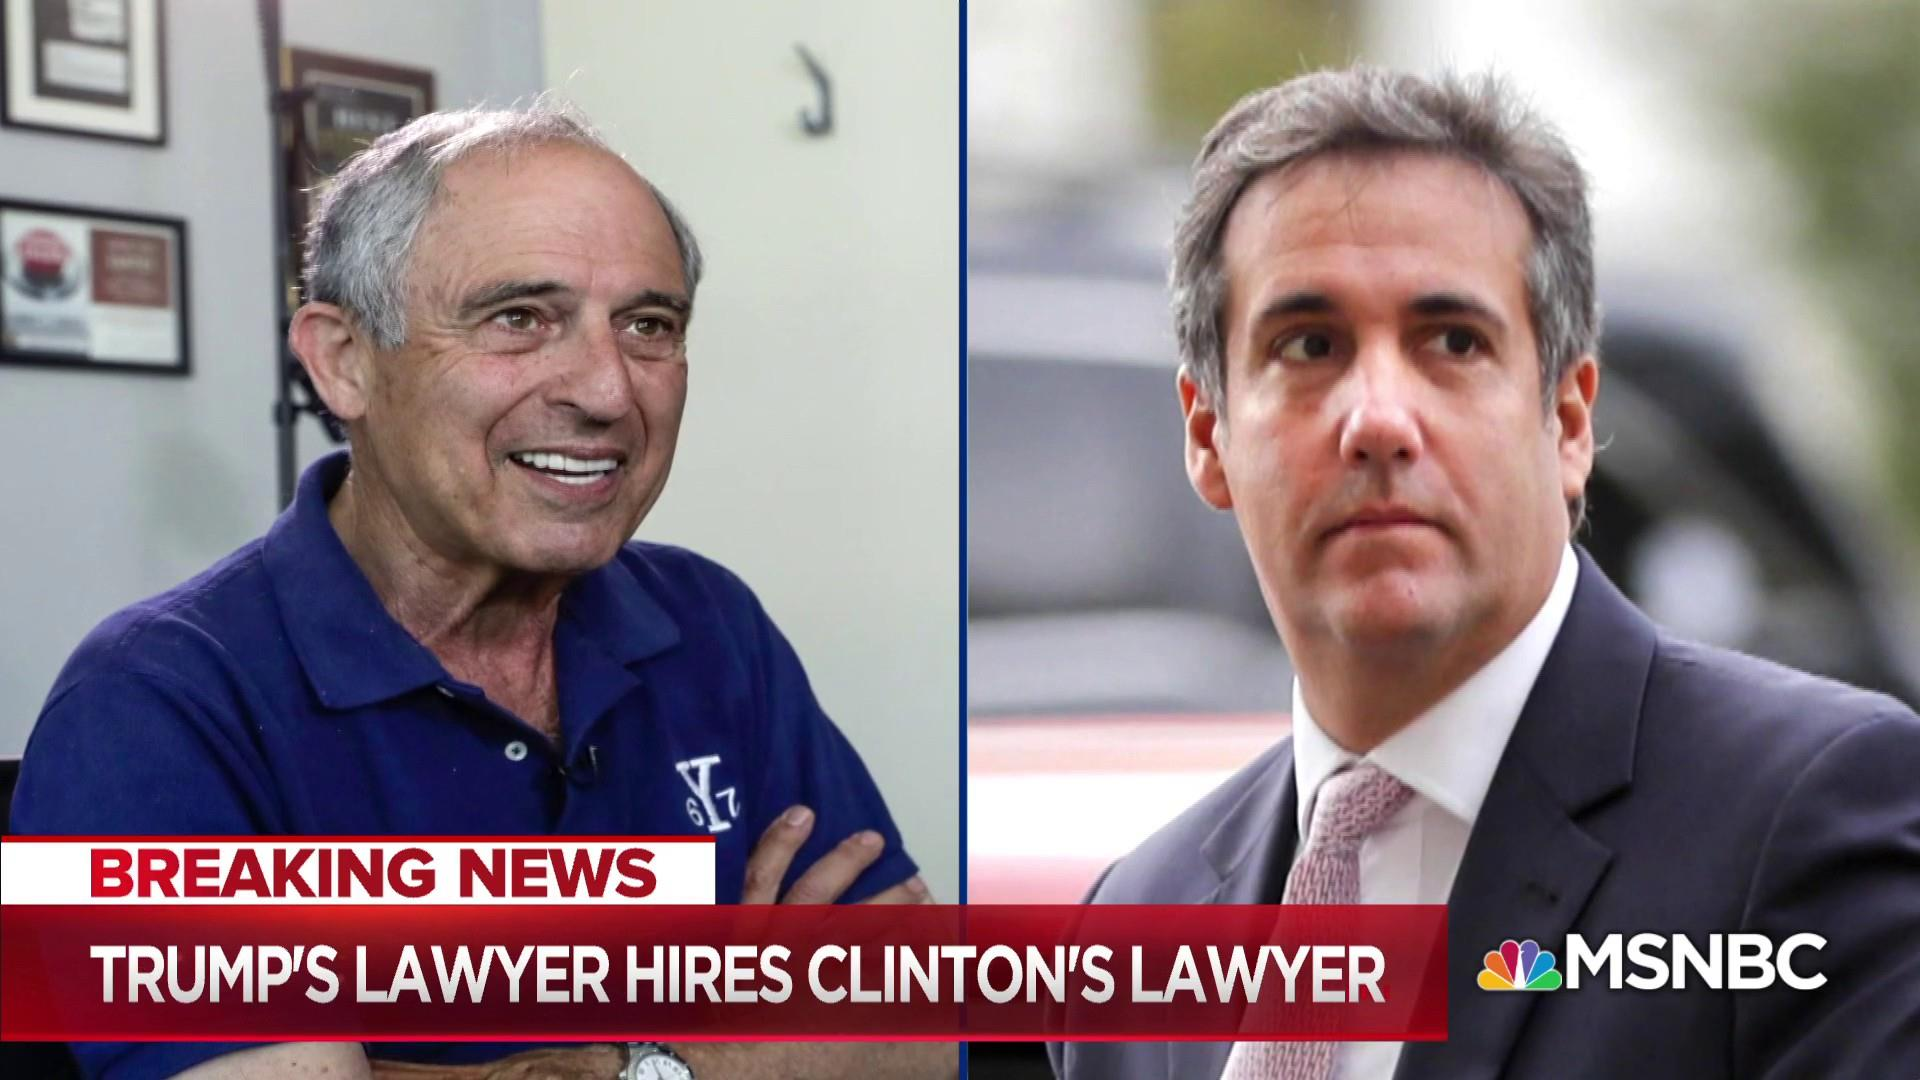 Trump's former lawyer: No question Michael Cohen will cooperate